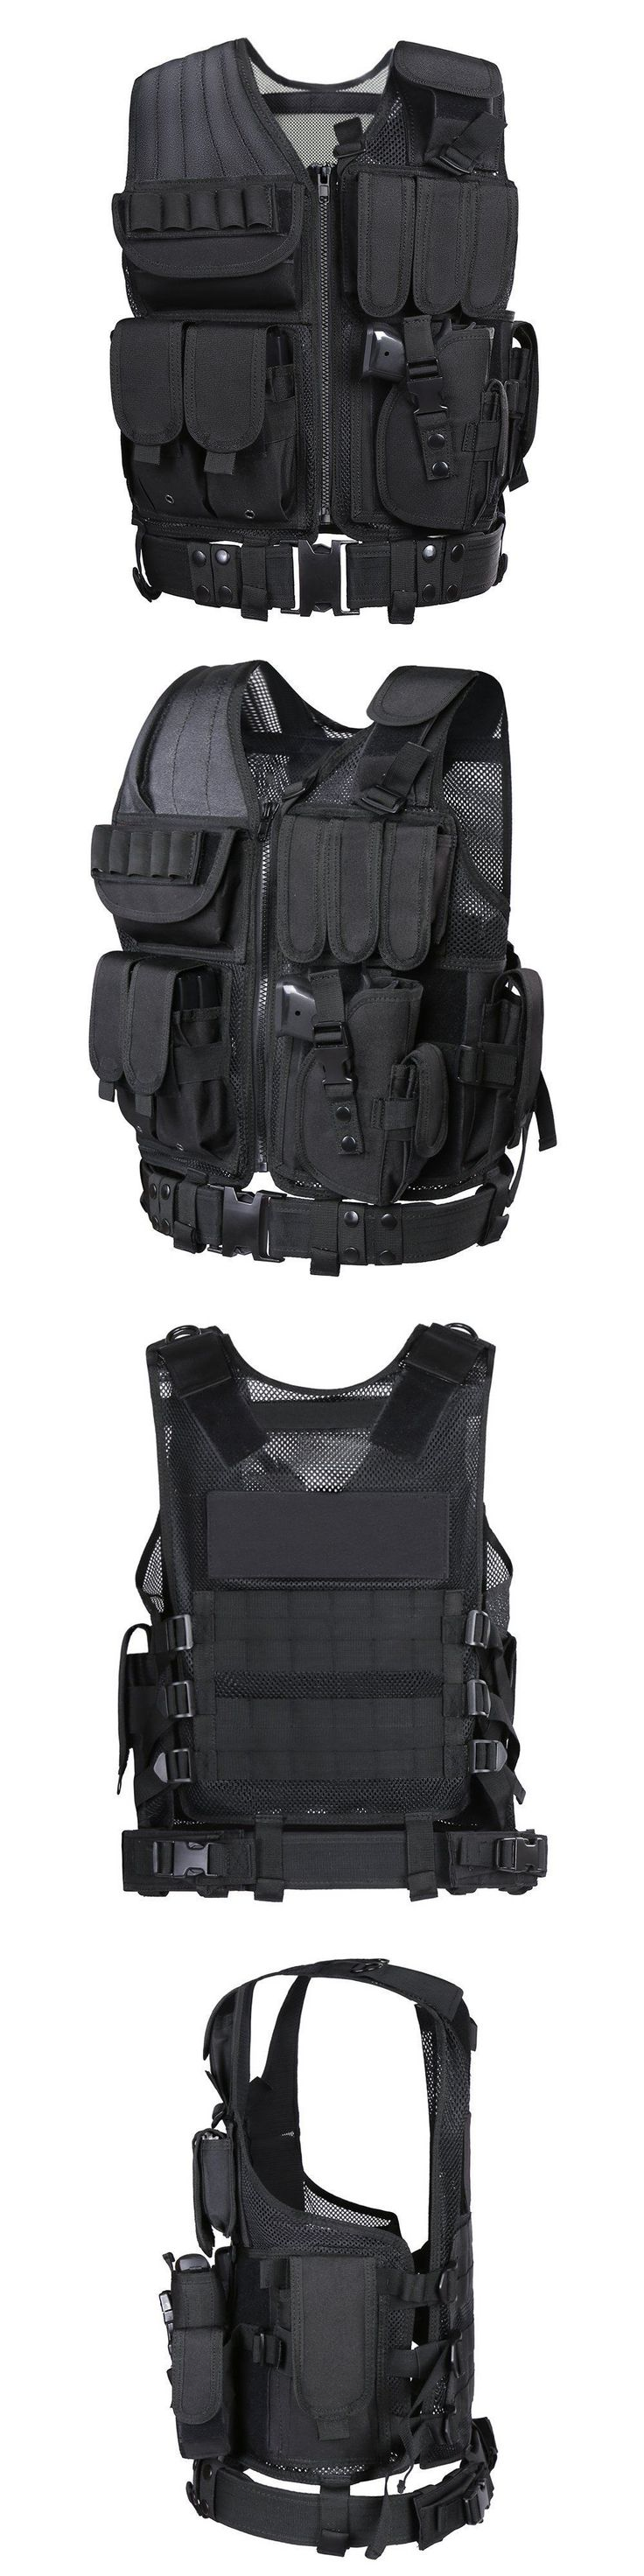 Chest Rigs and Tactical Vests 177891: Mechanic Electrician Carpenter Tool Vest Tactical Belt Bag Pouch Craftman Molle -> BUY IT NOW ONLY: $50.91 on eBay!